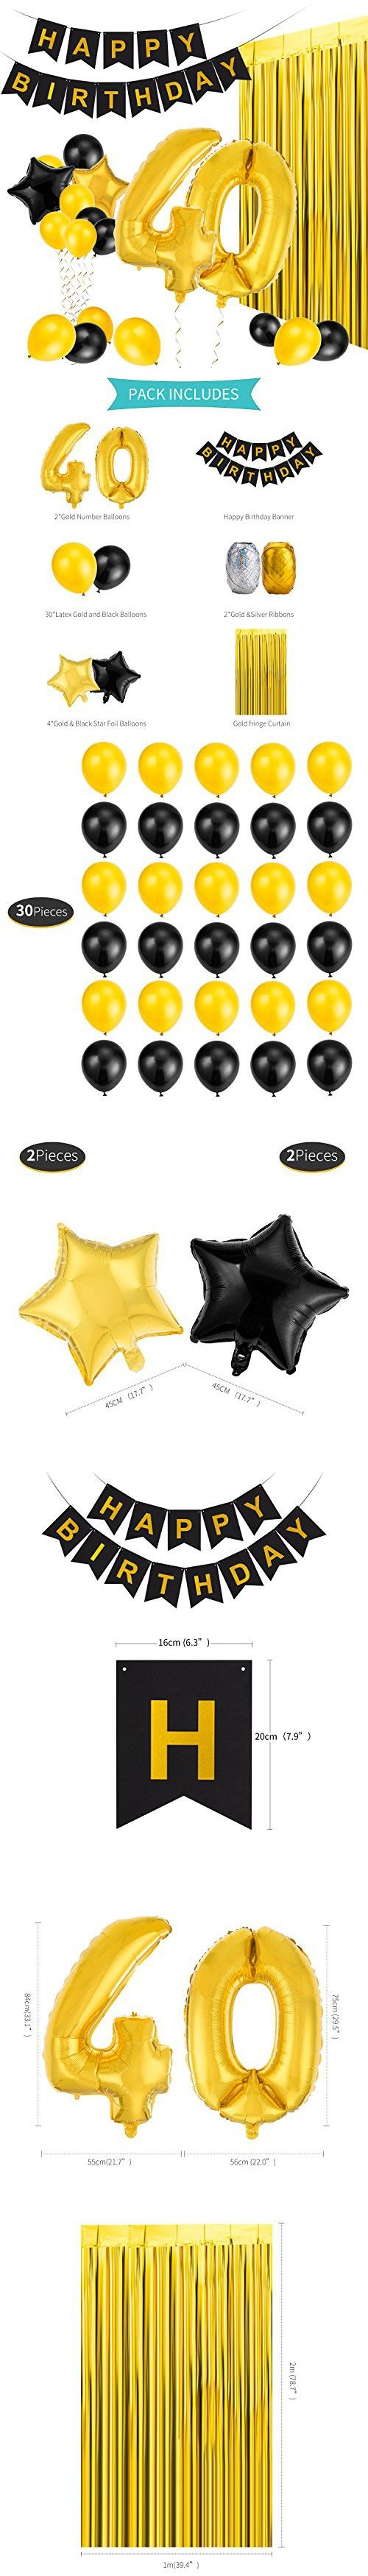 MeiHoyo 40th Birthday Decorations Happy Banner Party Kit Pack B Day Celebration Supplies With